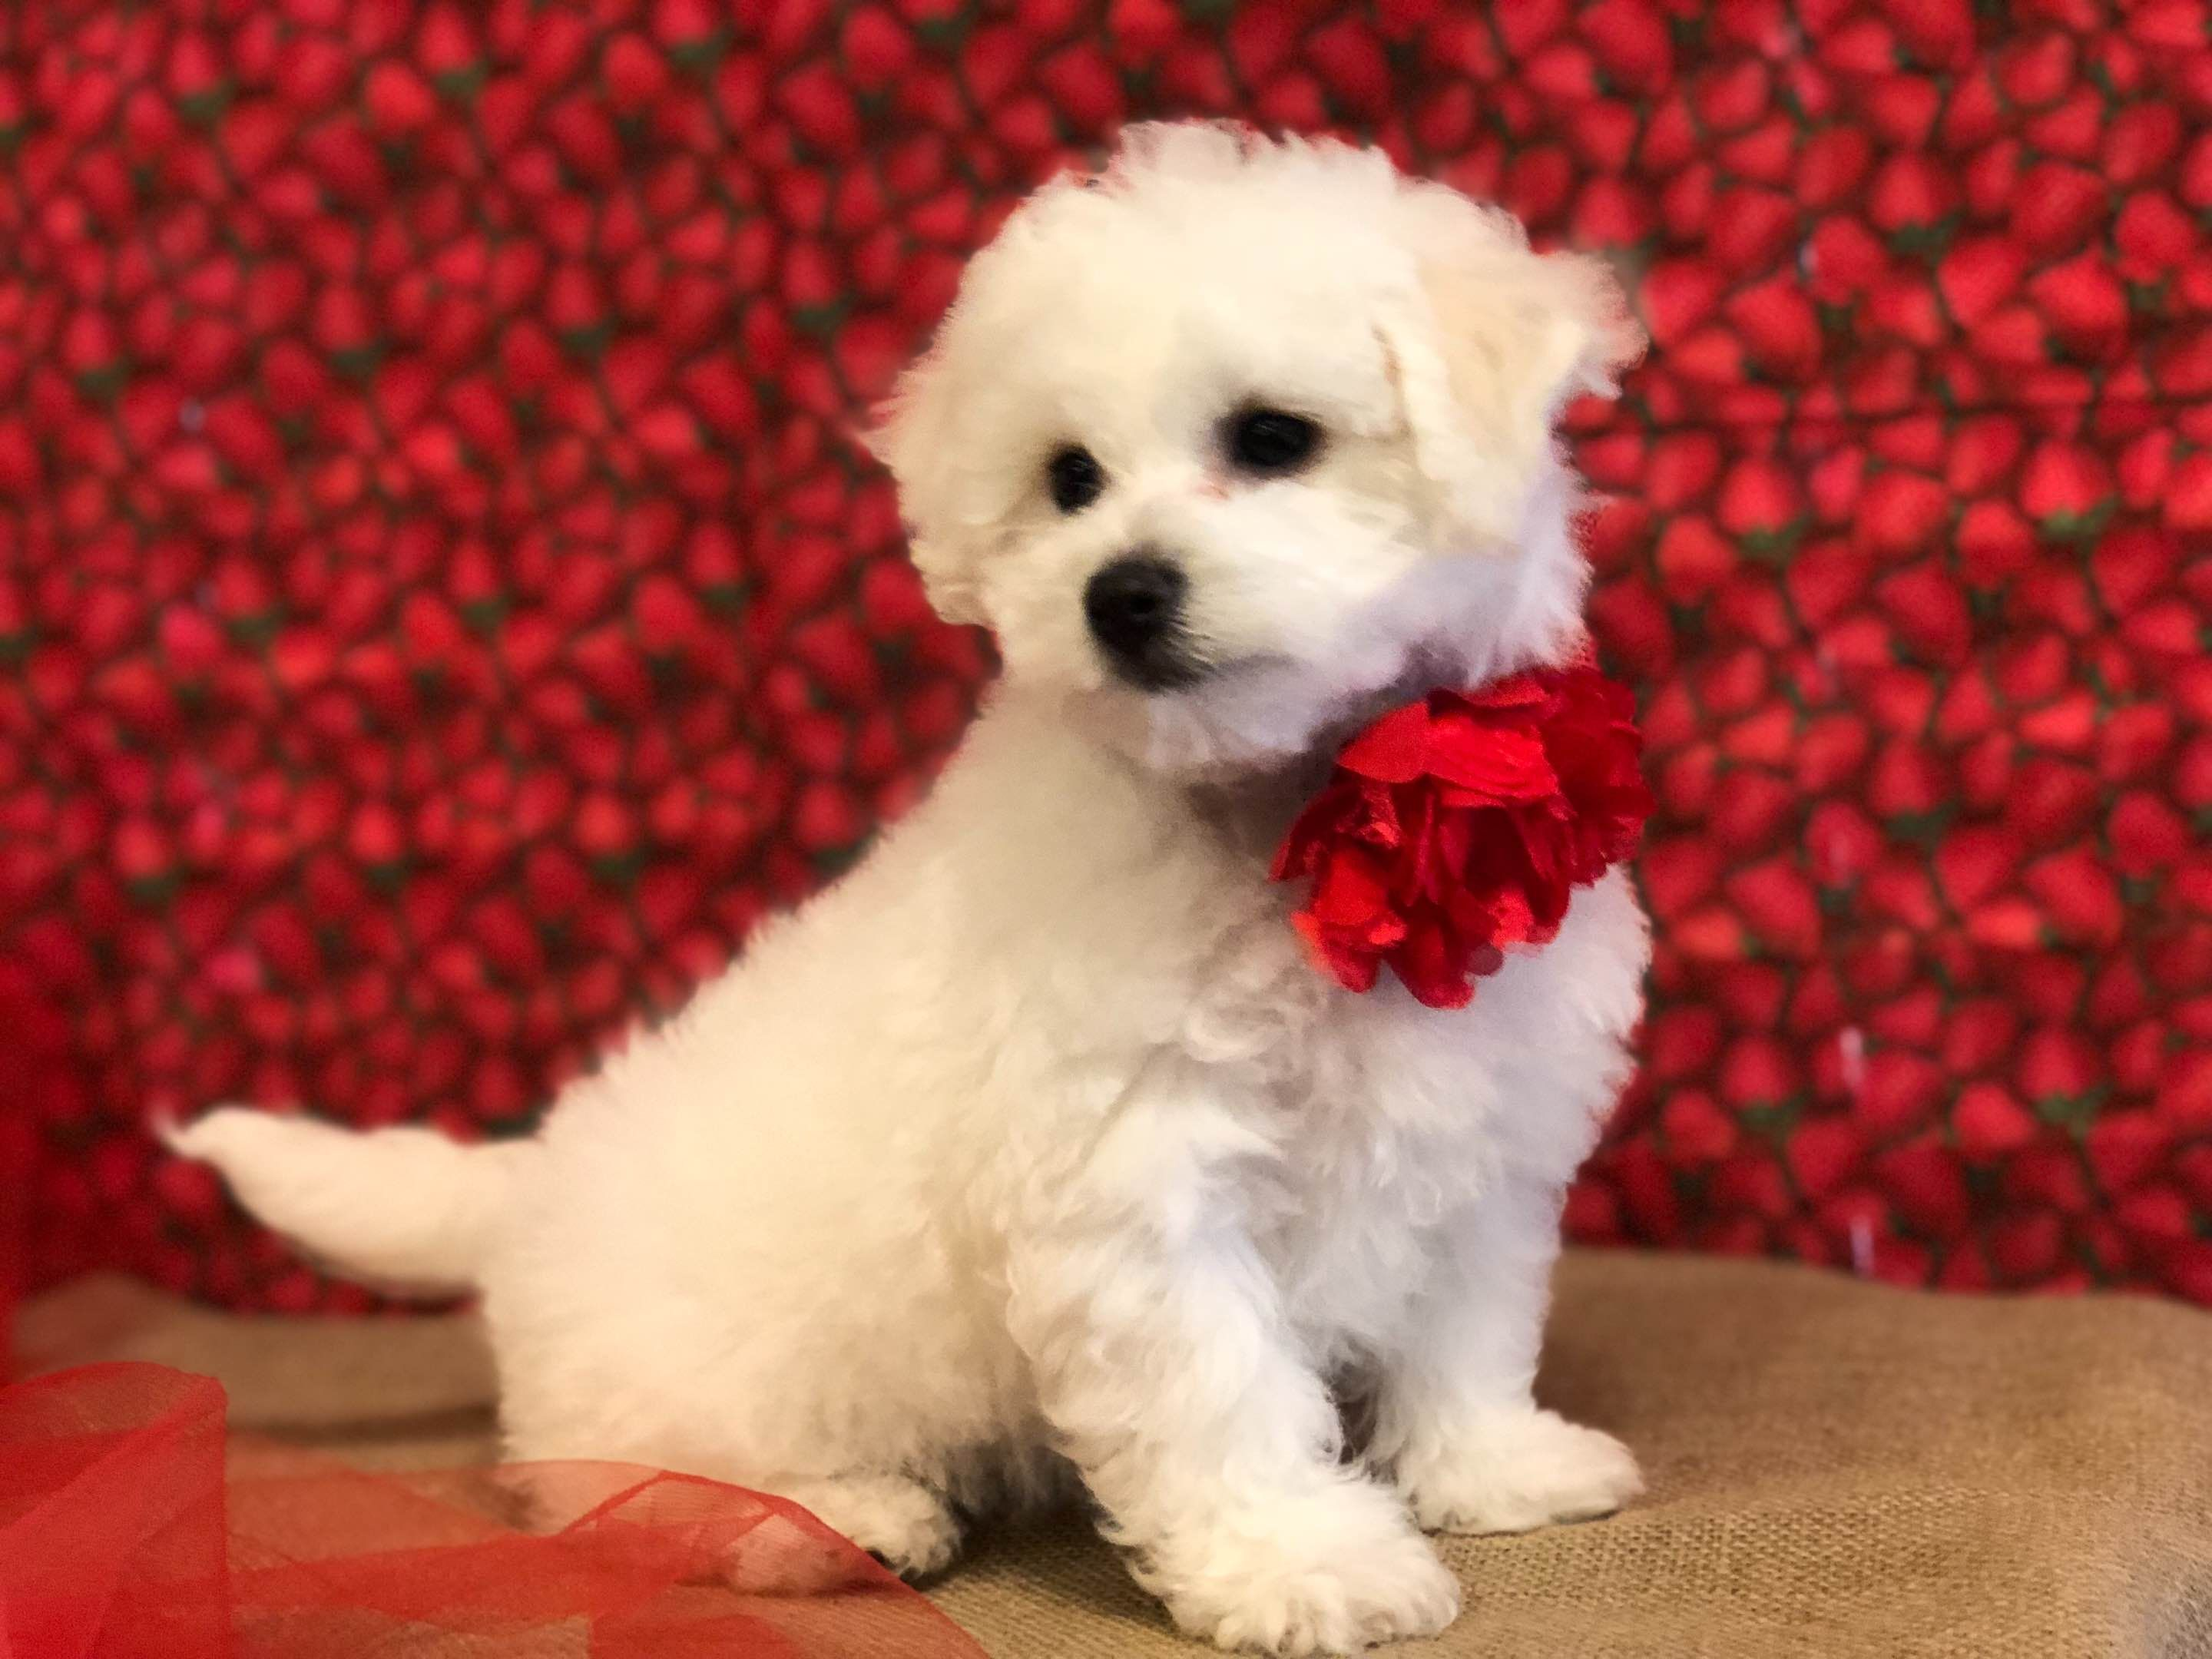 Precious Bichon Frise - Puppies For Sale